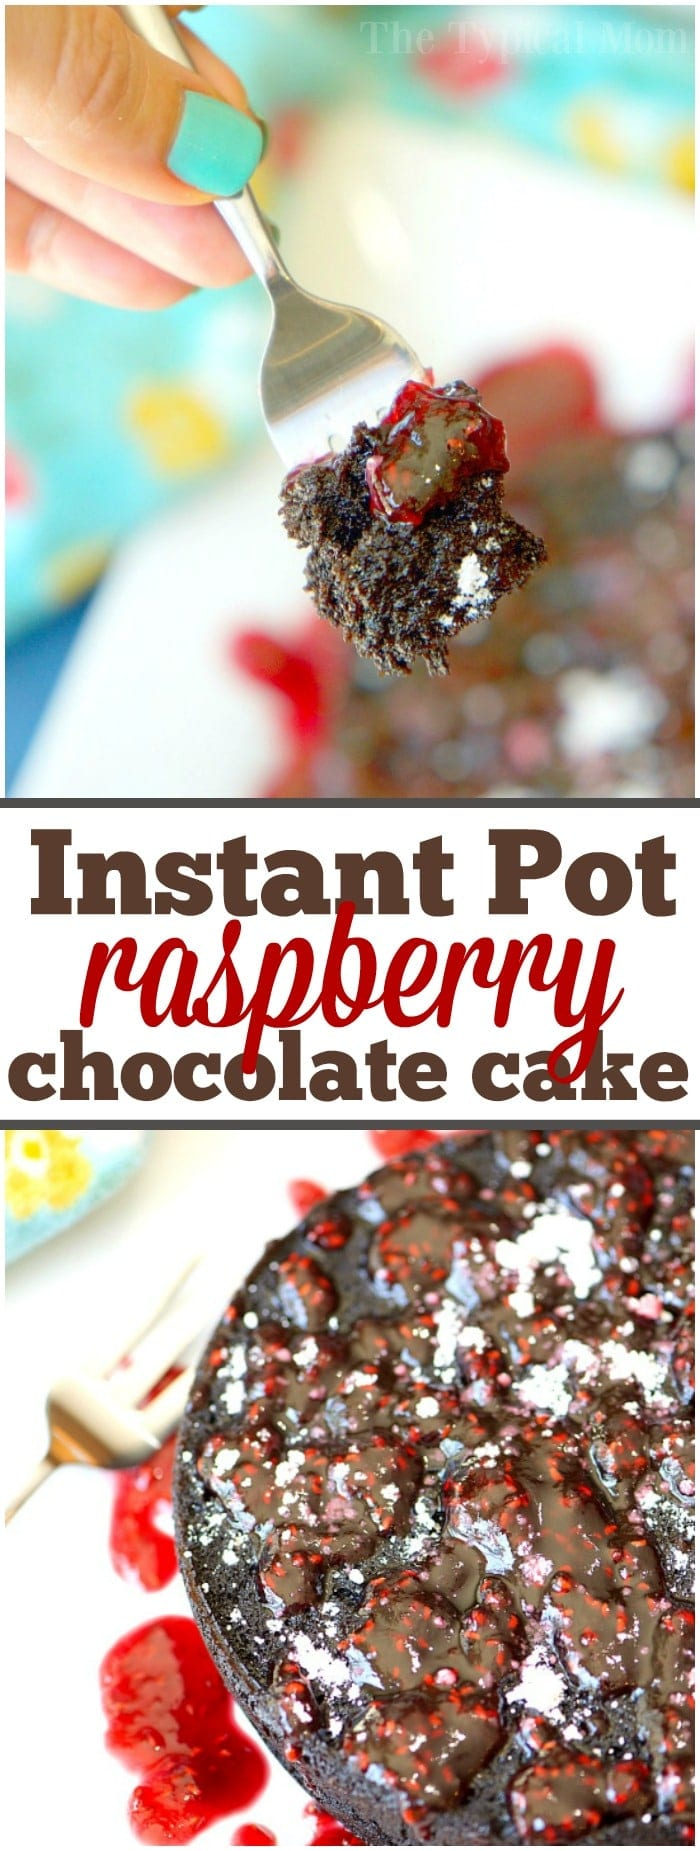 This easy Instant Pot chocolate cake with raspberry sauce recipe is so amazing you won't want to share! The moistest cake ever and only takes 35 minutes!